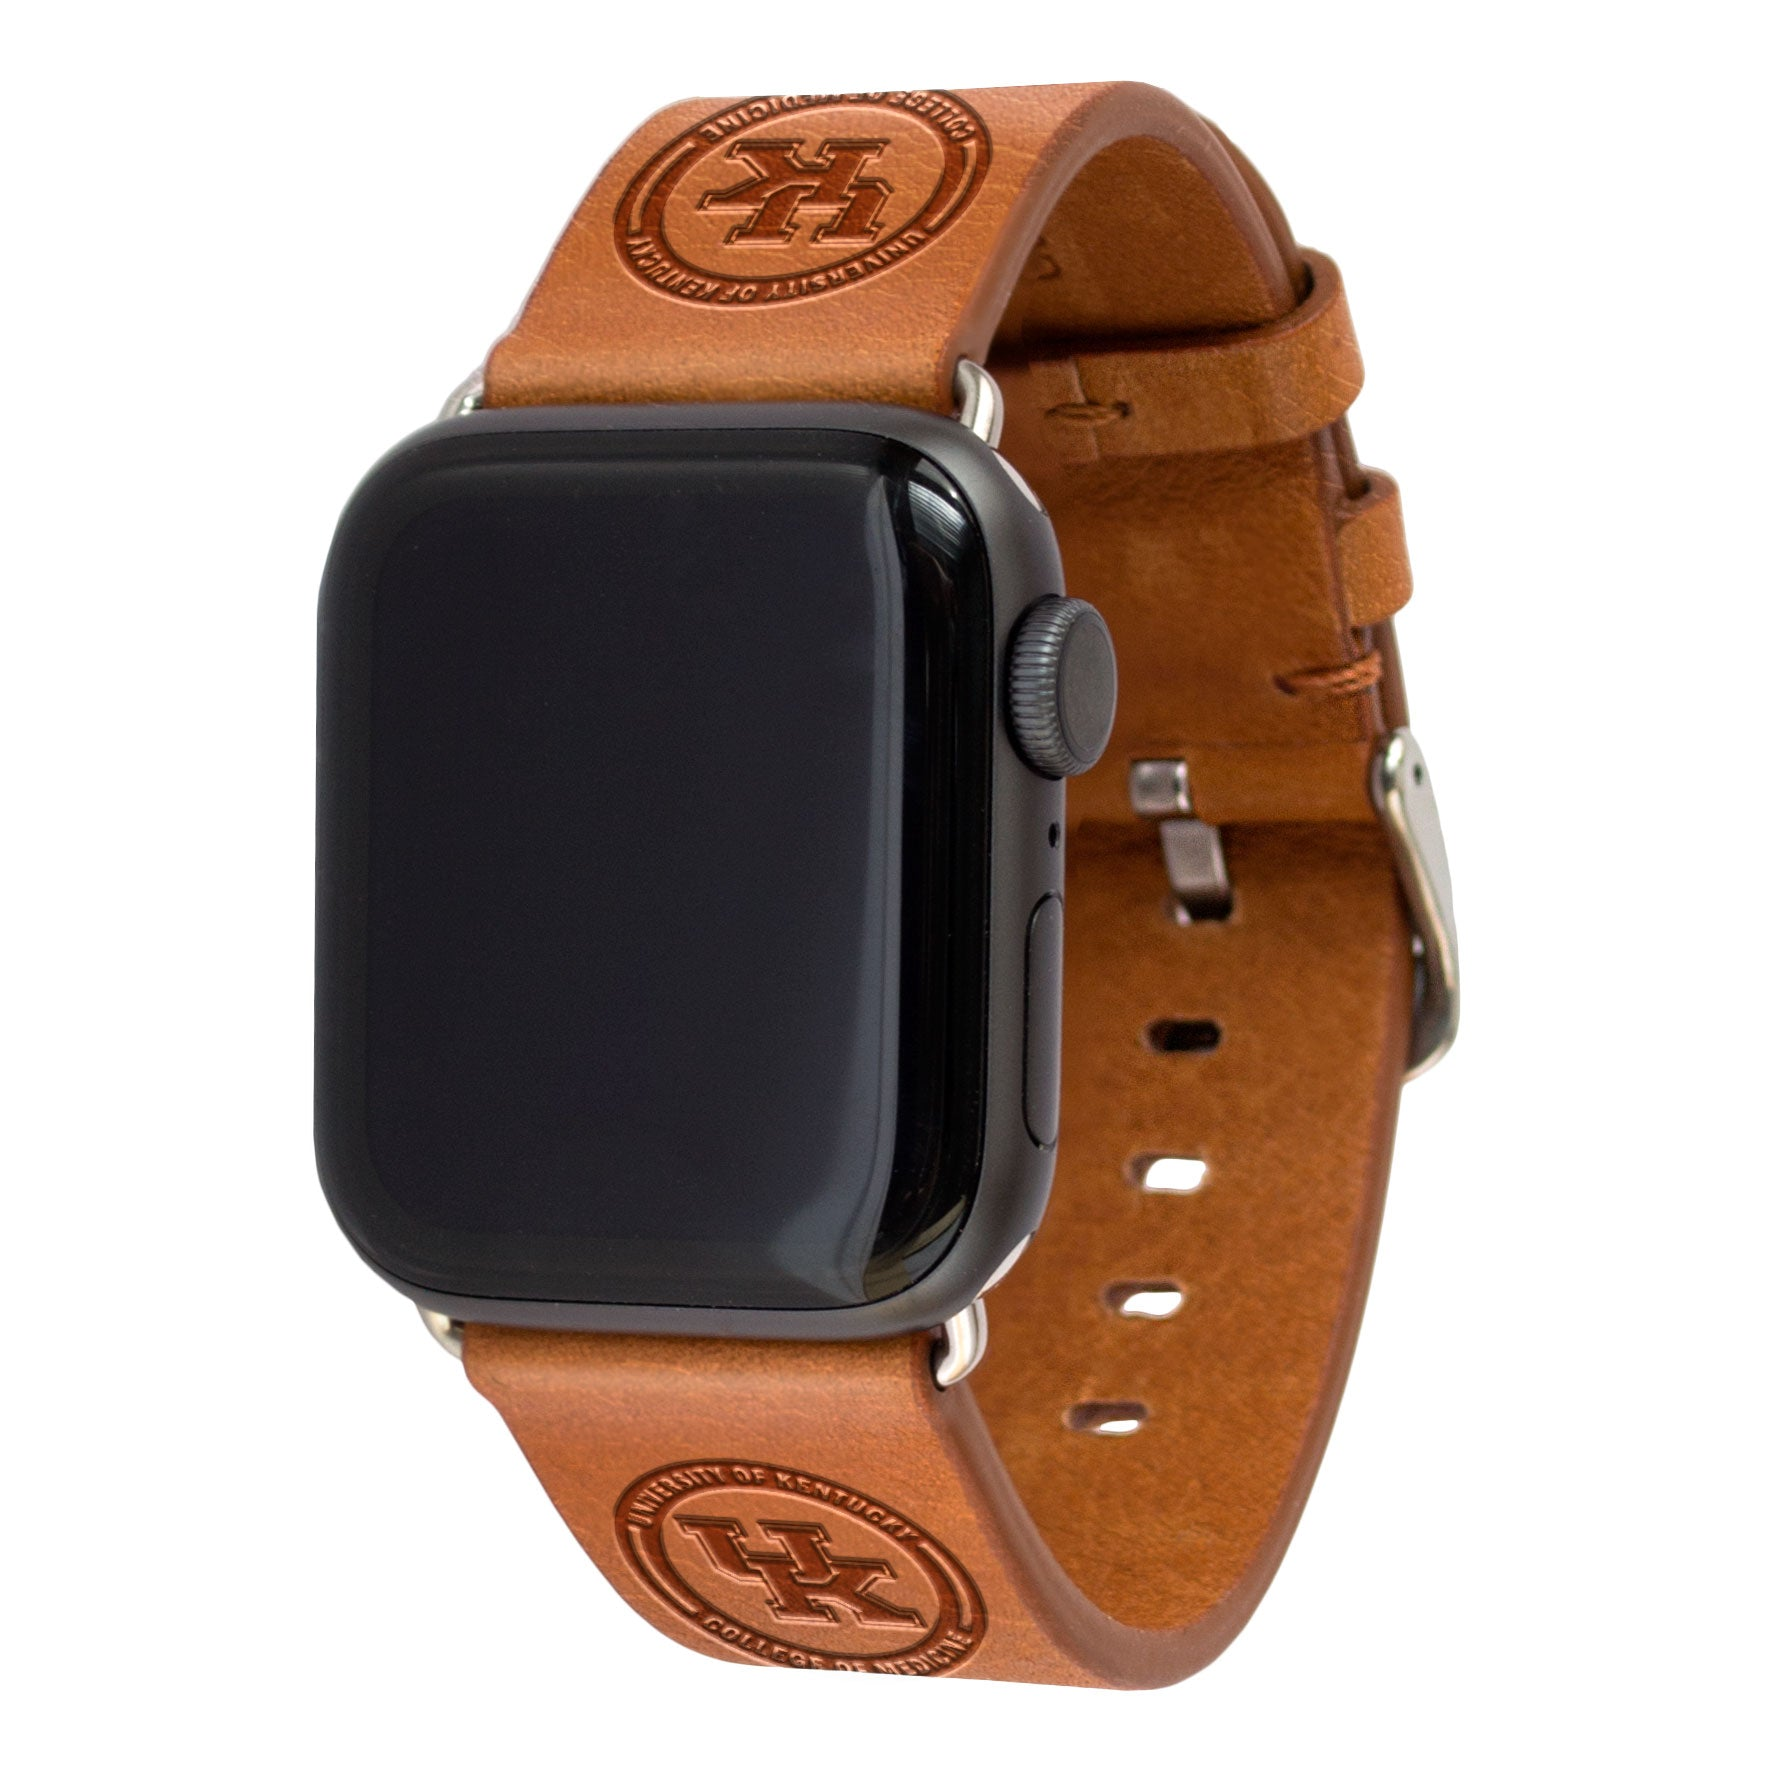 University of Kentucky College of Medicine Leather Apple Watch Band